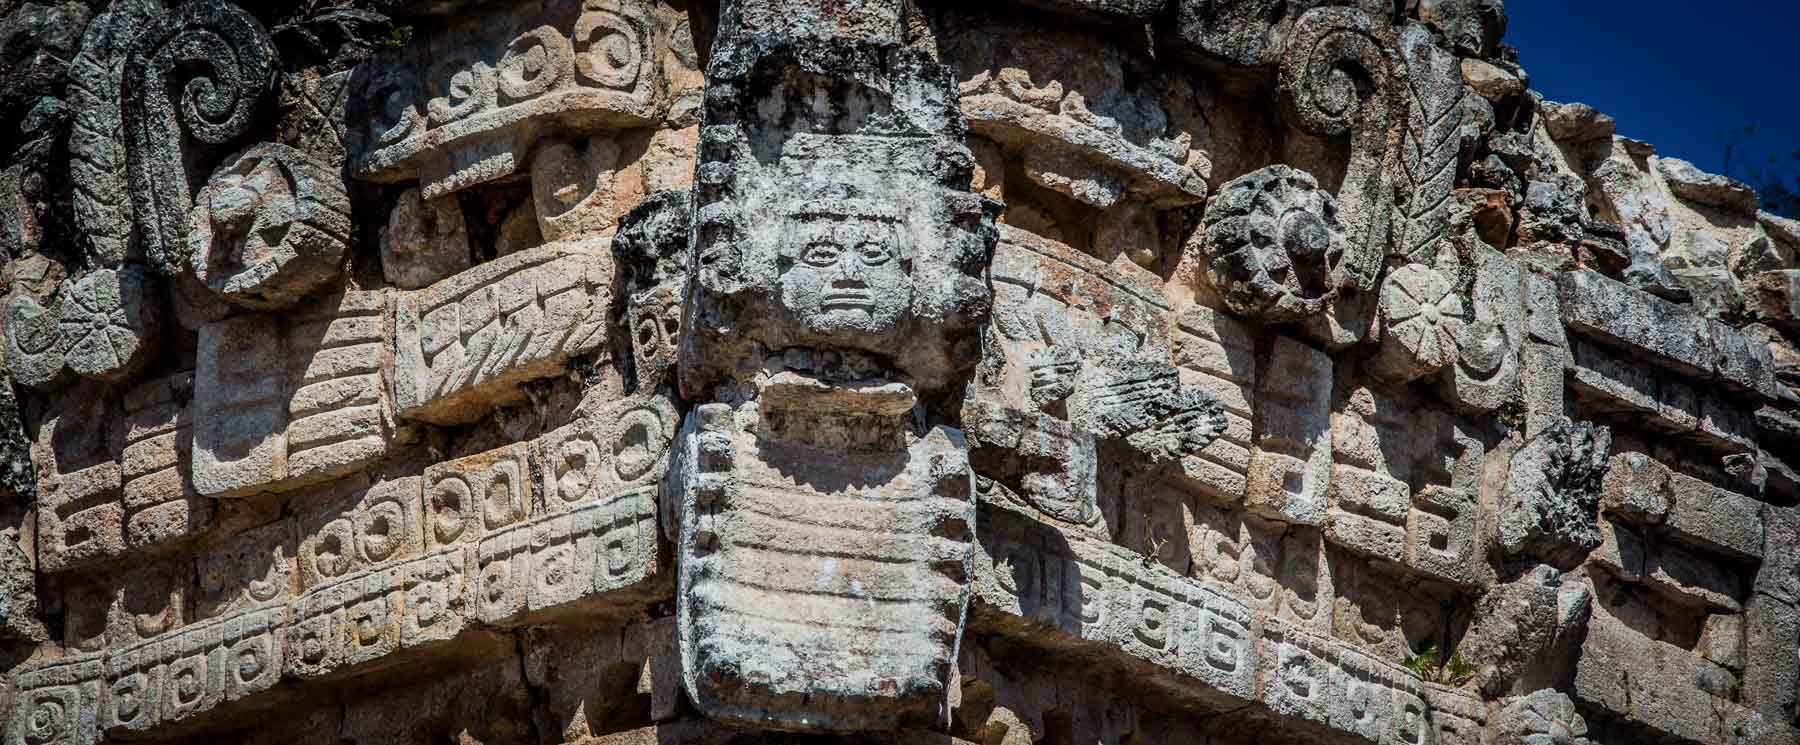 A head in a snake's jaws – a popular motif at Uxmal.